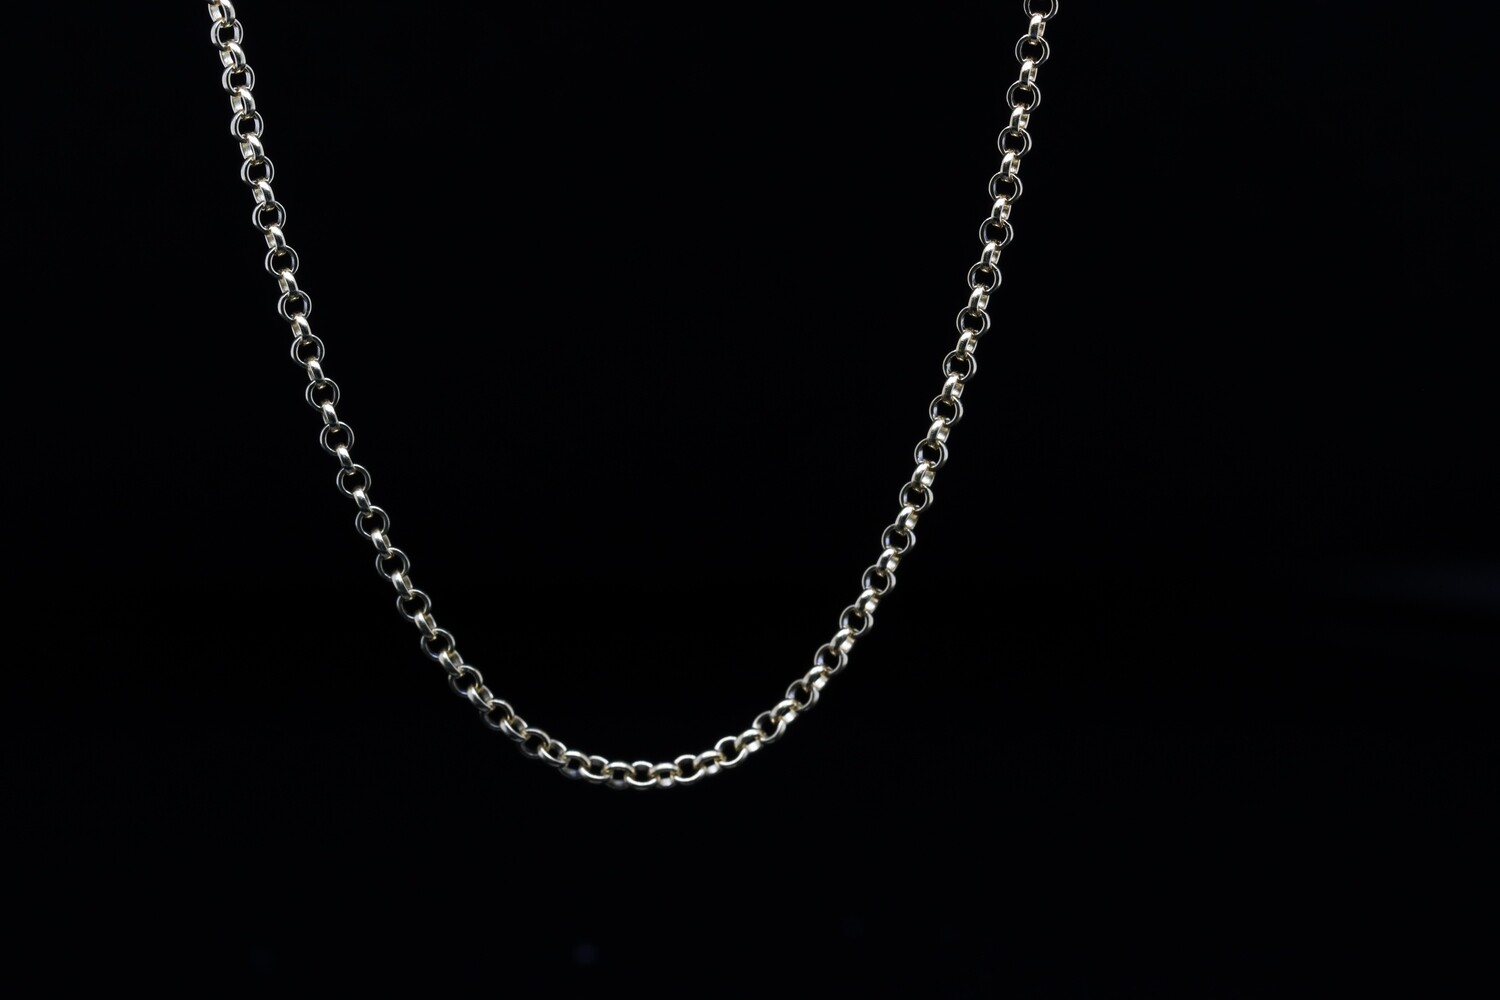 Solitaire Long Buckle Chain